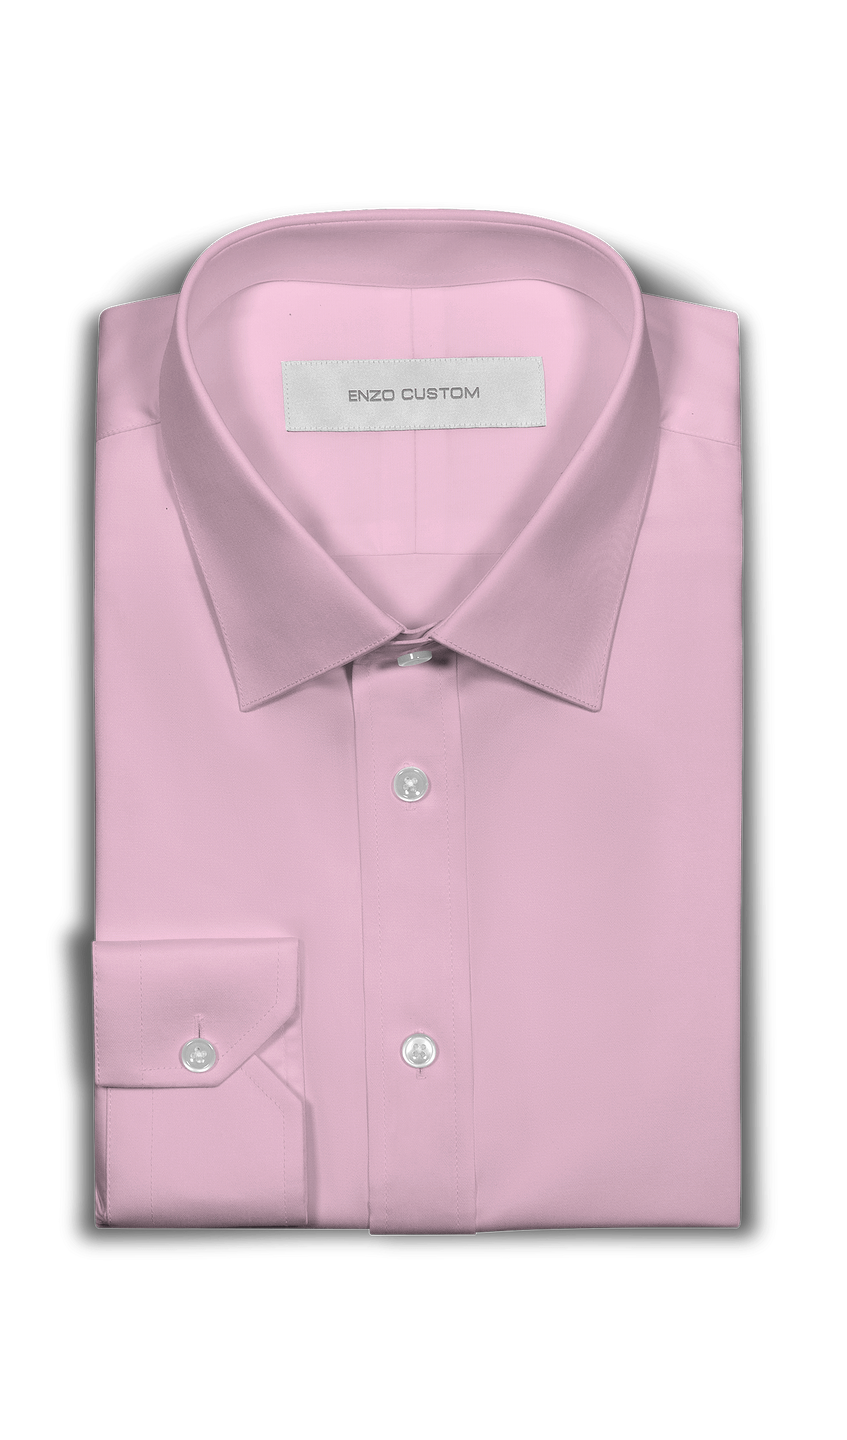 Solid Pink Cotton Dress Shirt - Enzo Custom